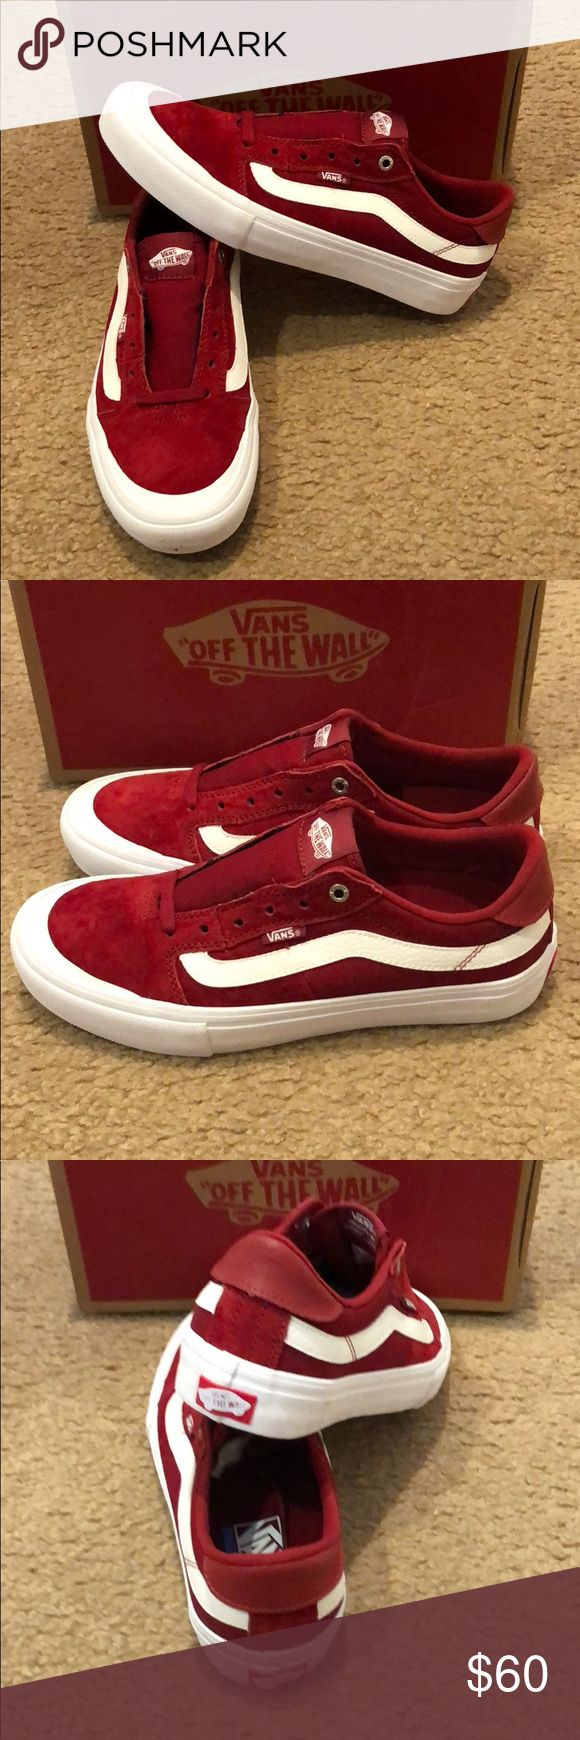 Style 112 Pro Vans New in box. Red dahlia Vans Shoes Sneakers